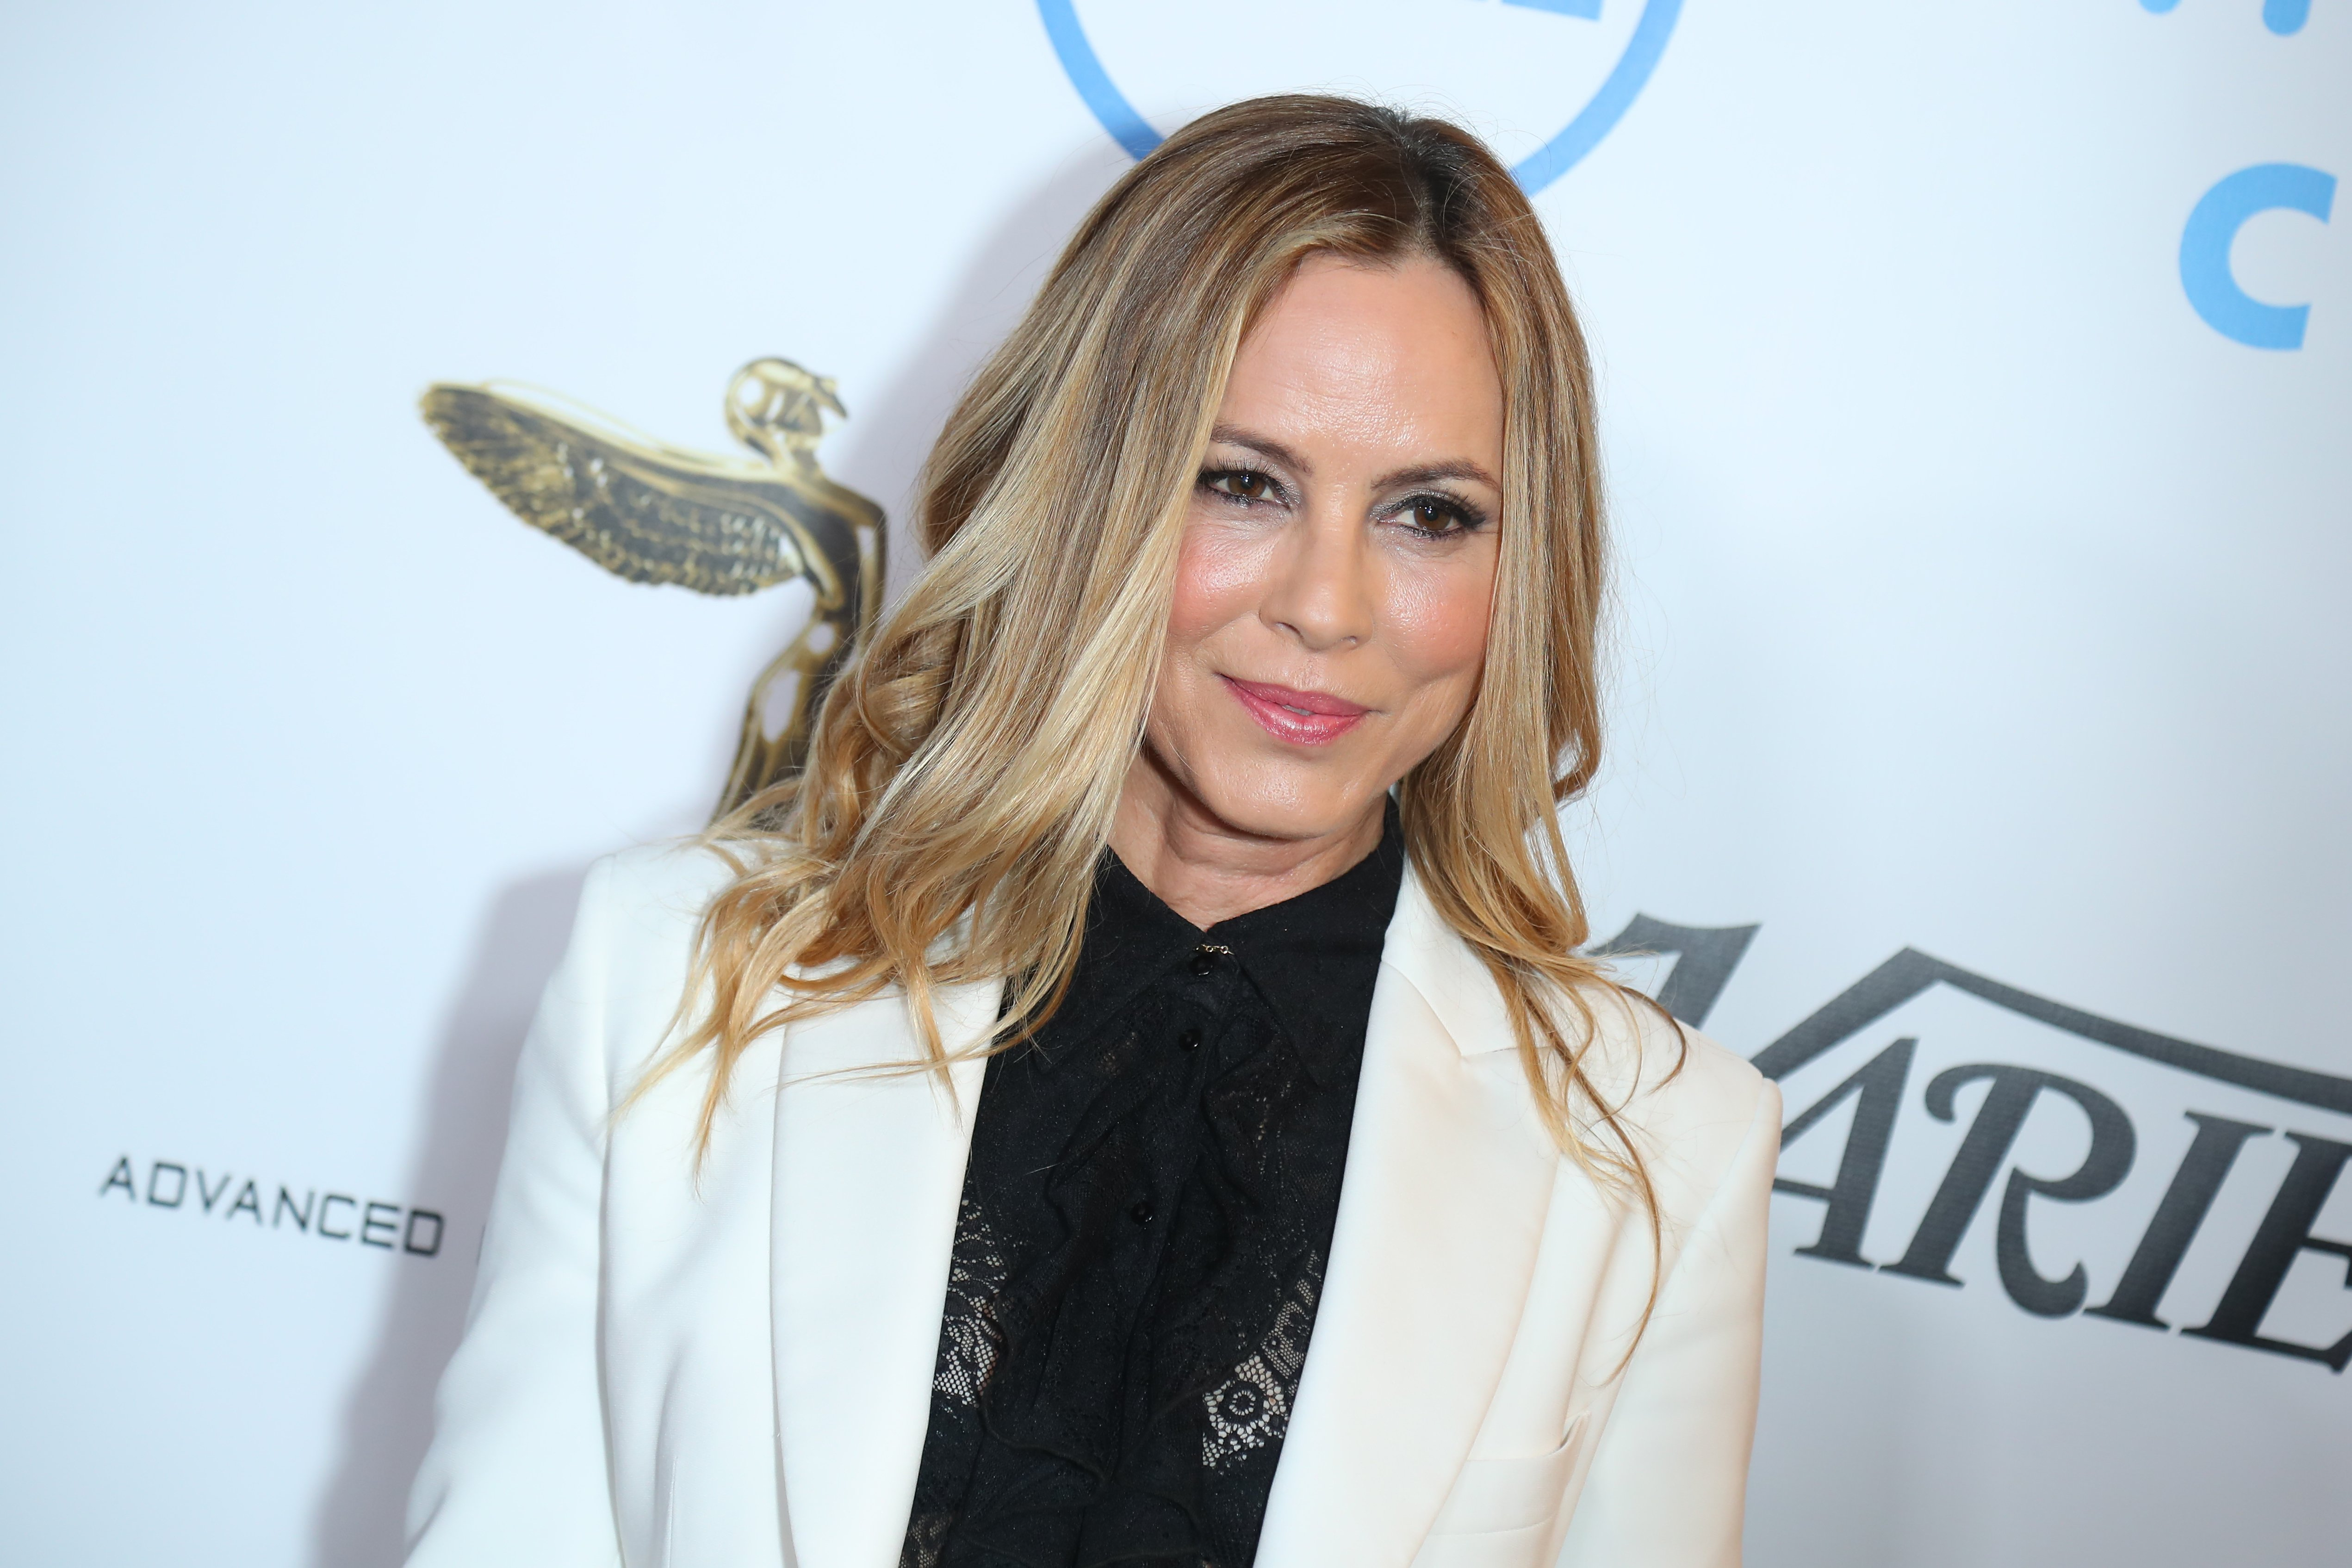 Maria Bello attends the 10th Annual Lumiere Awards in Burbank, California on January 30, 2019 | Photo: Getty Images